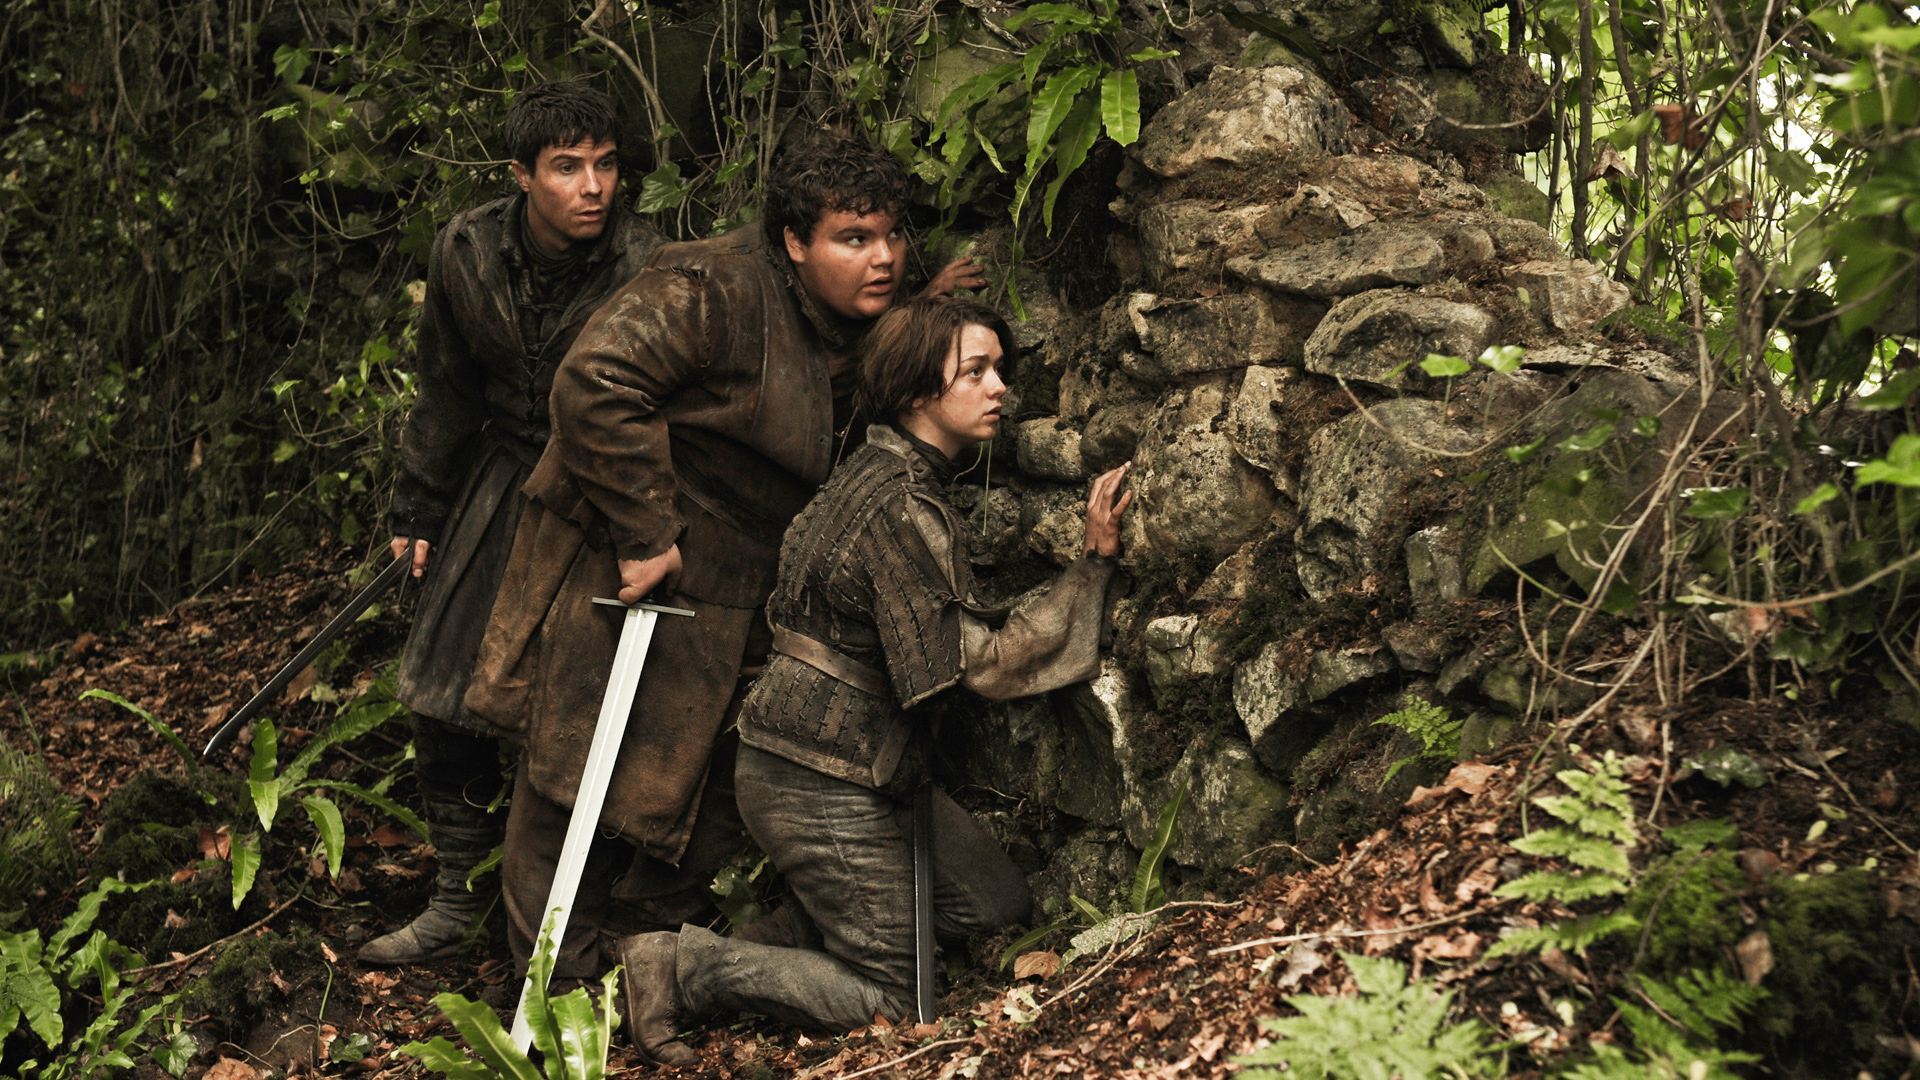 A Major 'Game of Thrones' Character Returns to Change the Show's Endgame